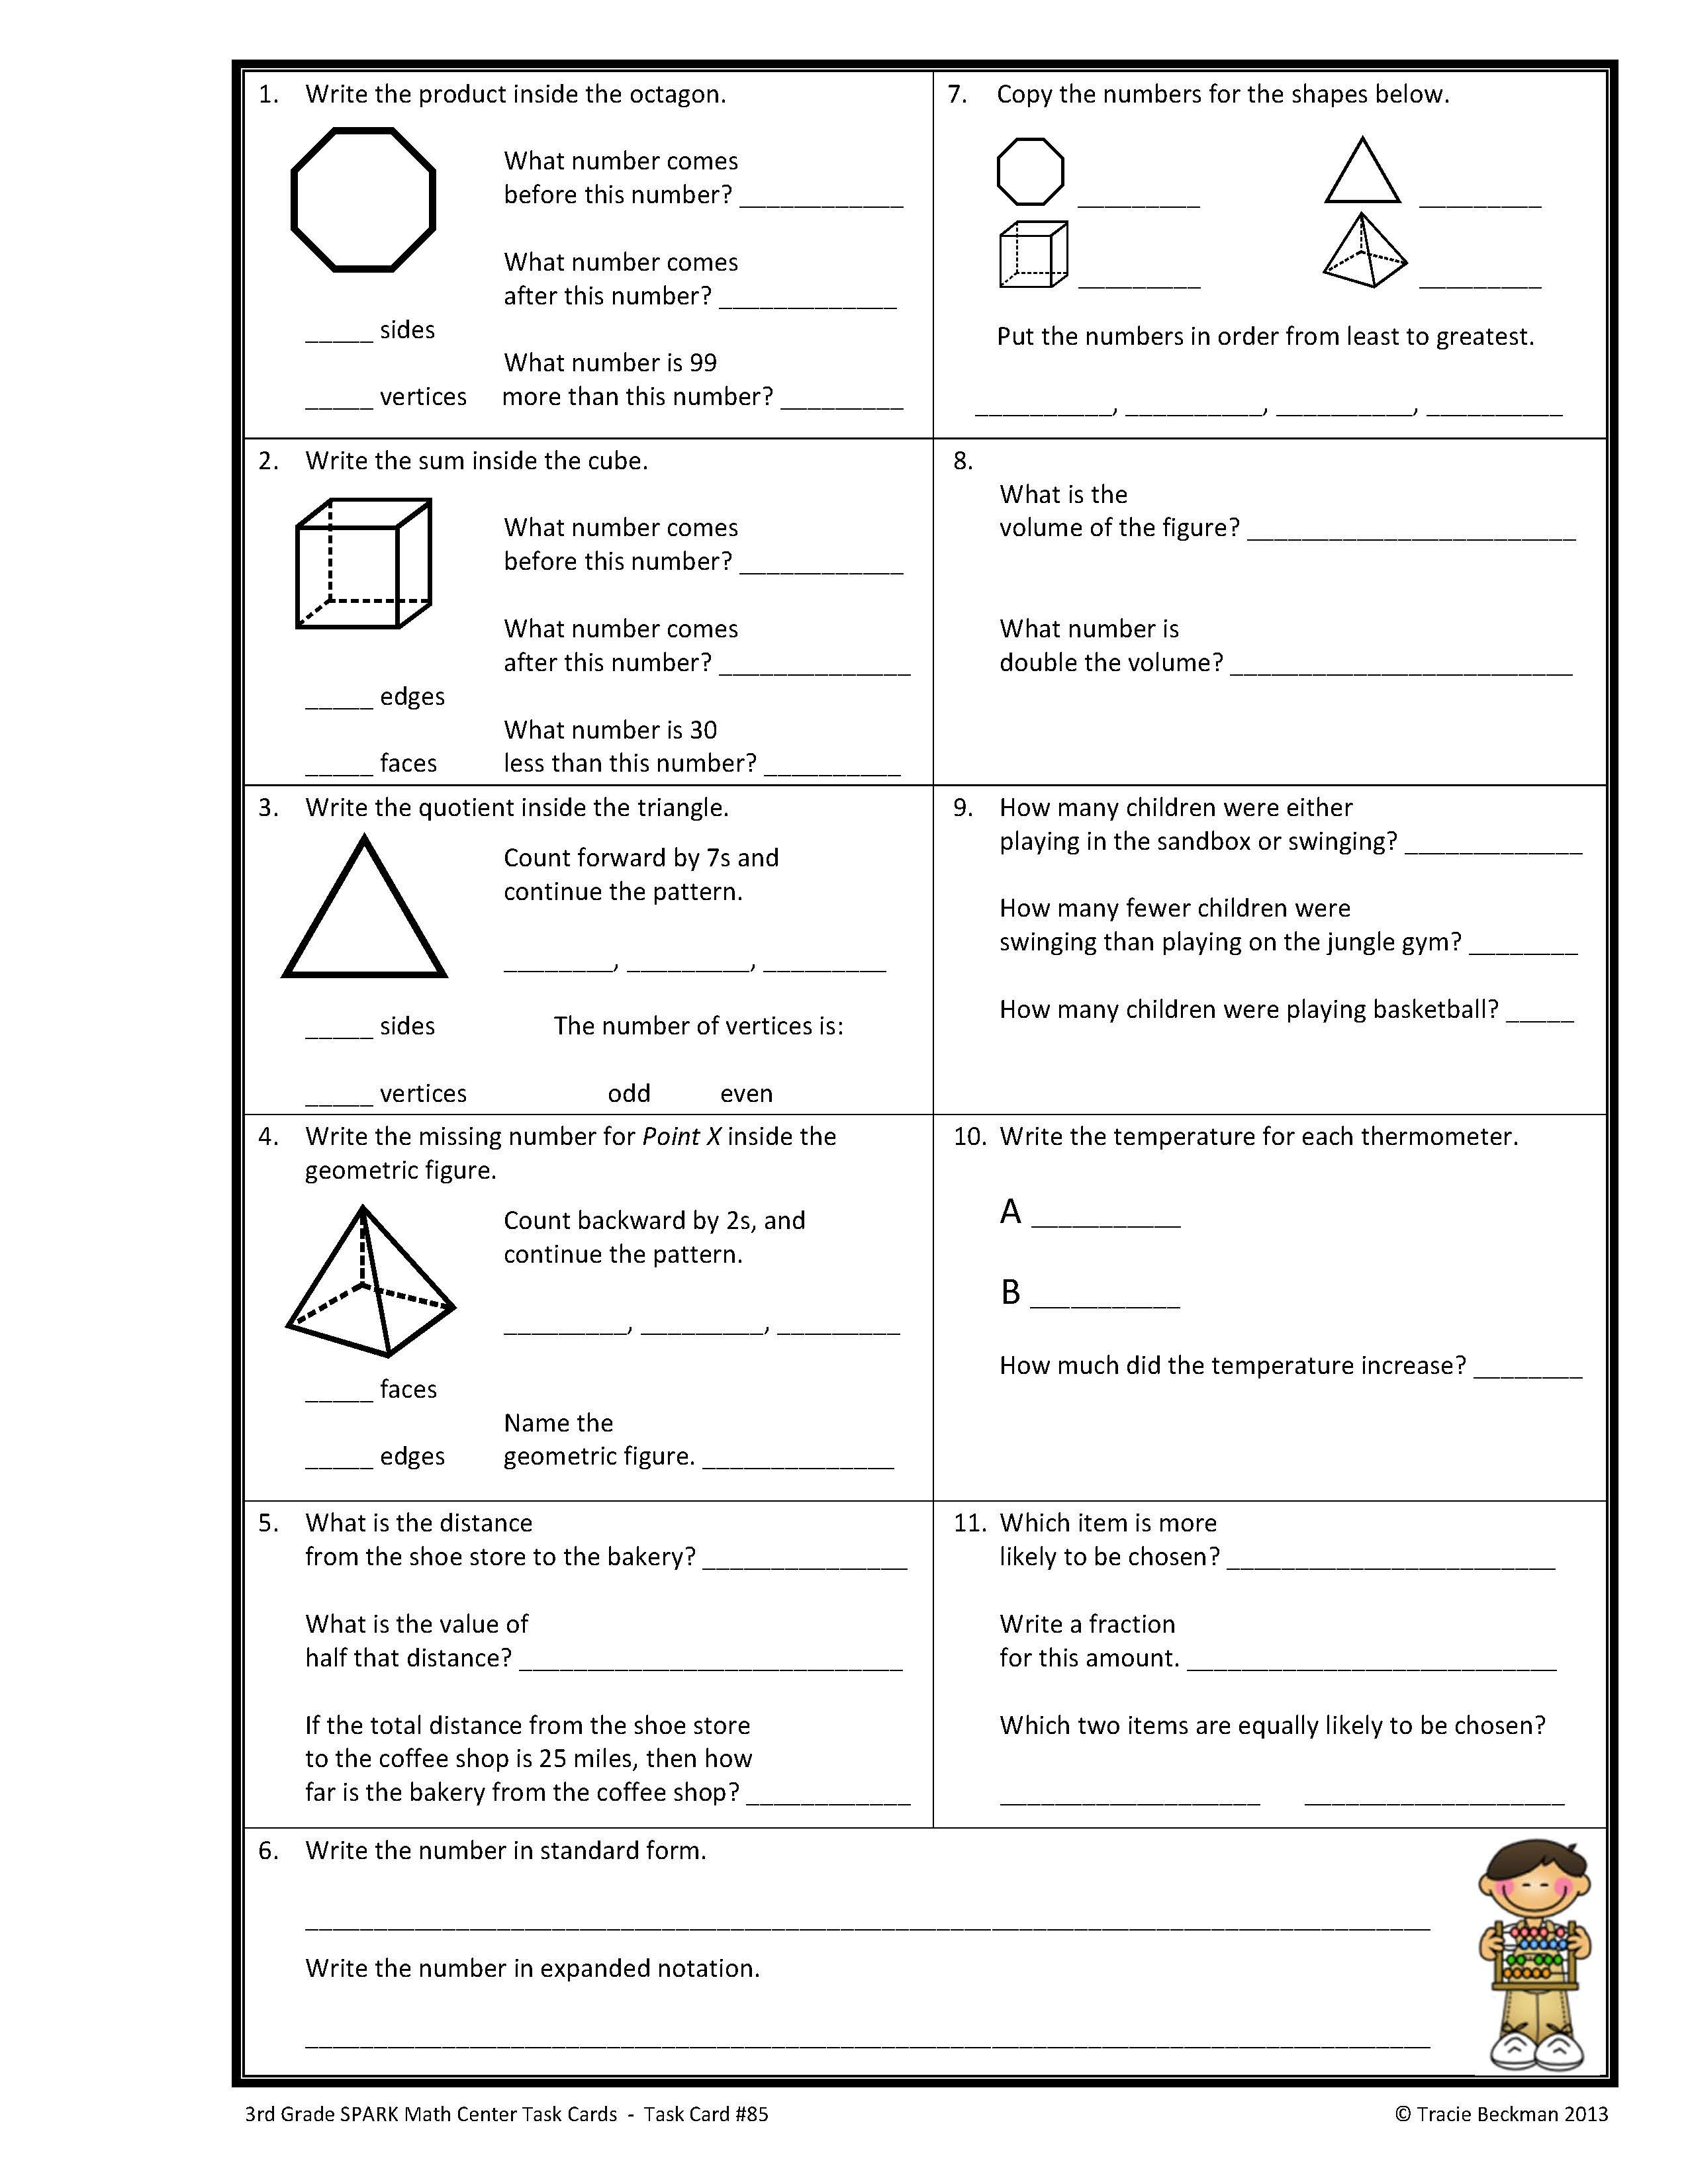 Spiraled Staar Common Core Math Review For 3rd Grade Complete